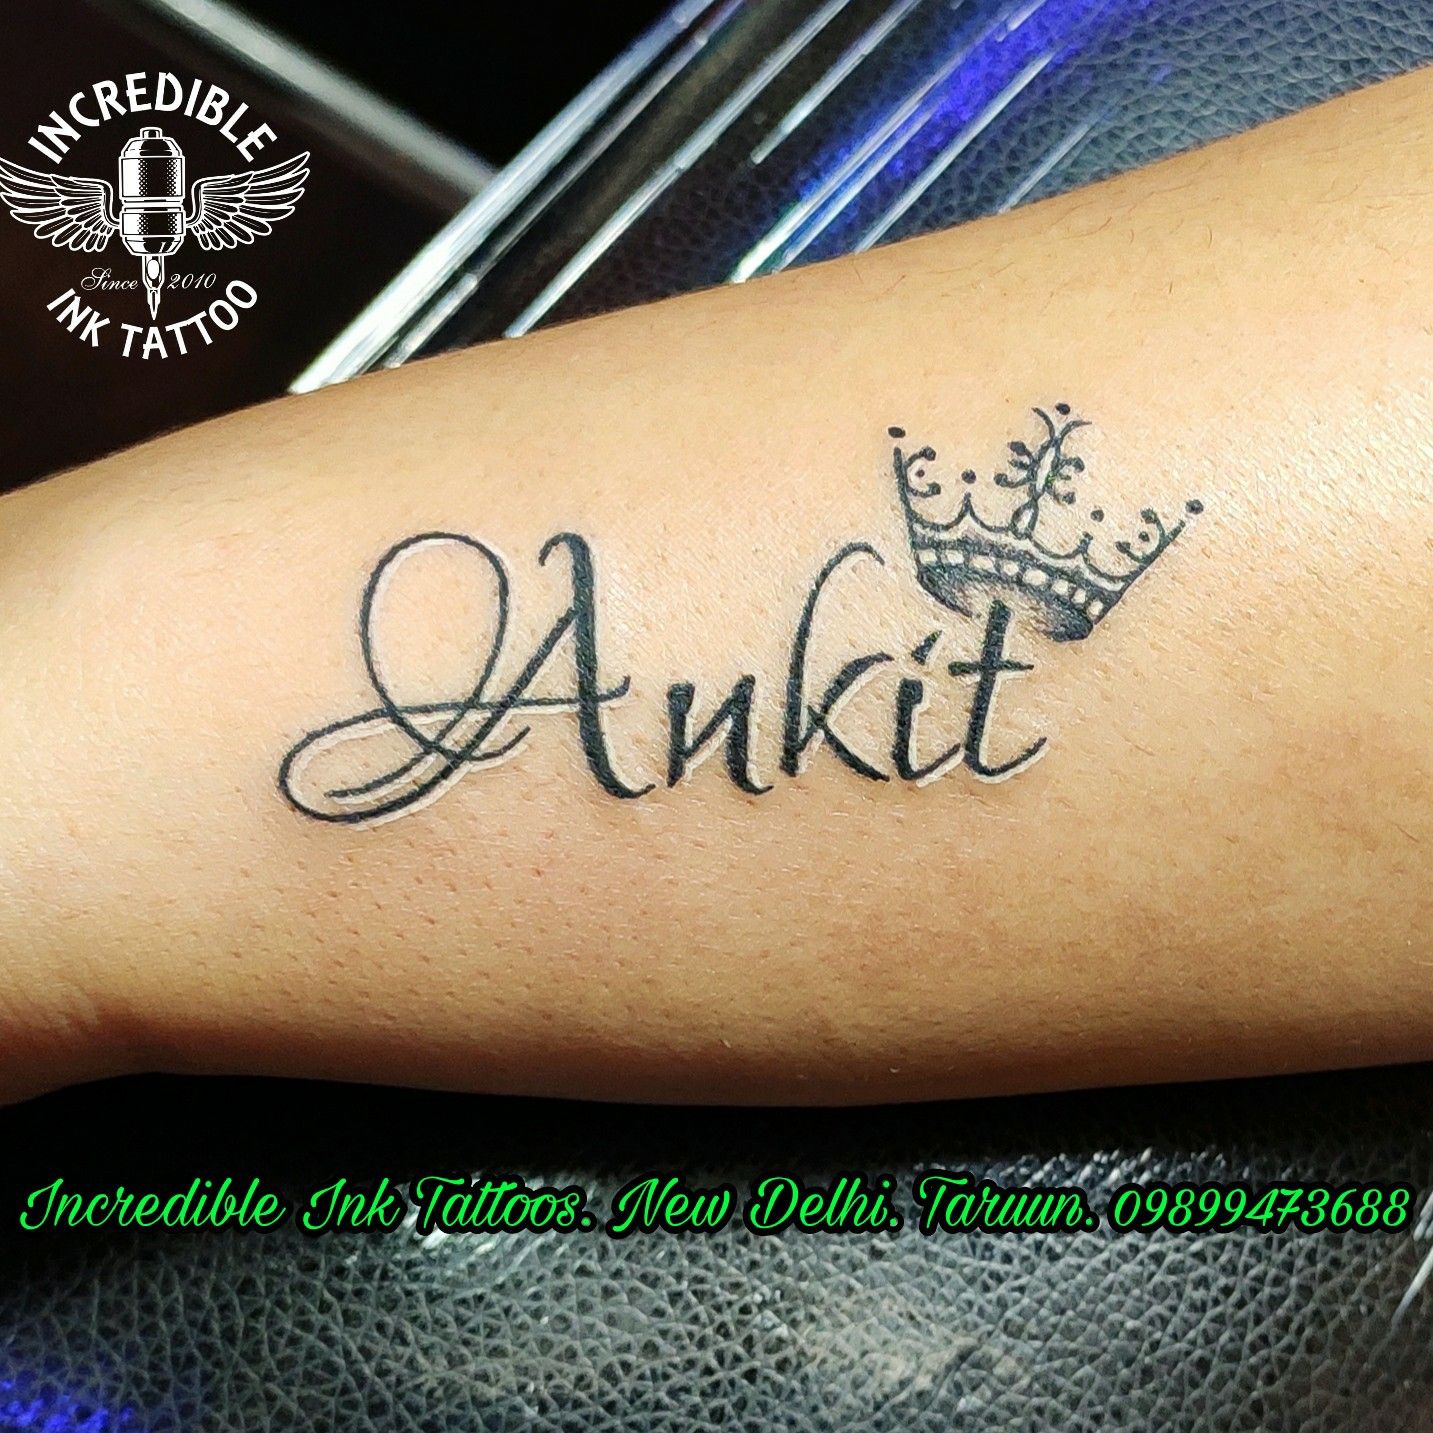 Ankitnametattoo Ankit Nametattoo Ankit Name Tattoo Call Whtsapp 09899473688 In 2020 Name Tattoo Tattoos Infinity Tattoo